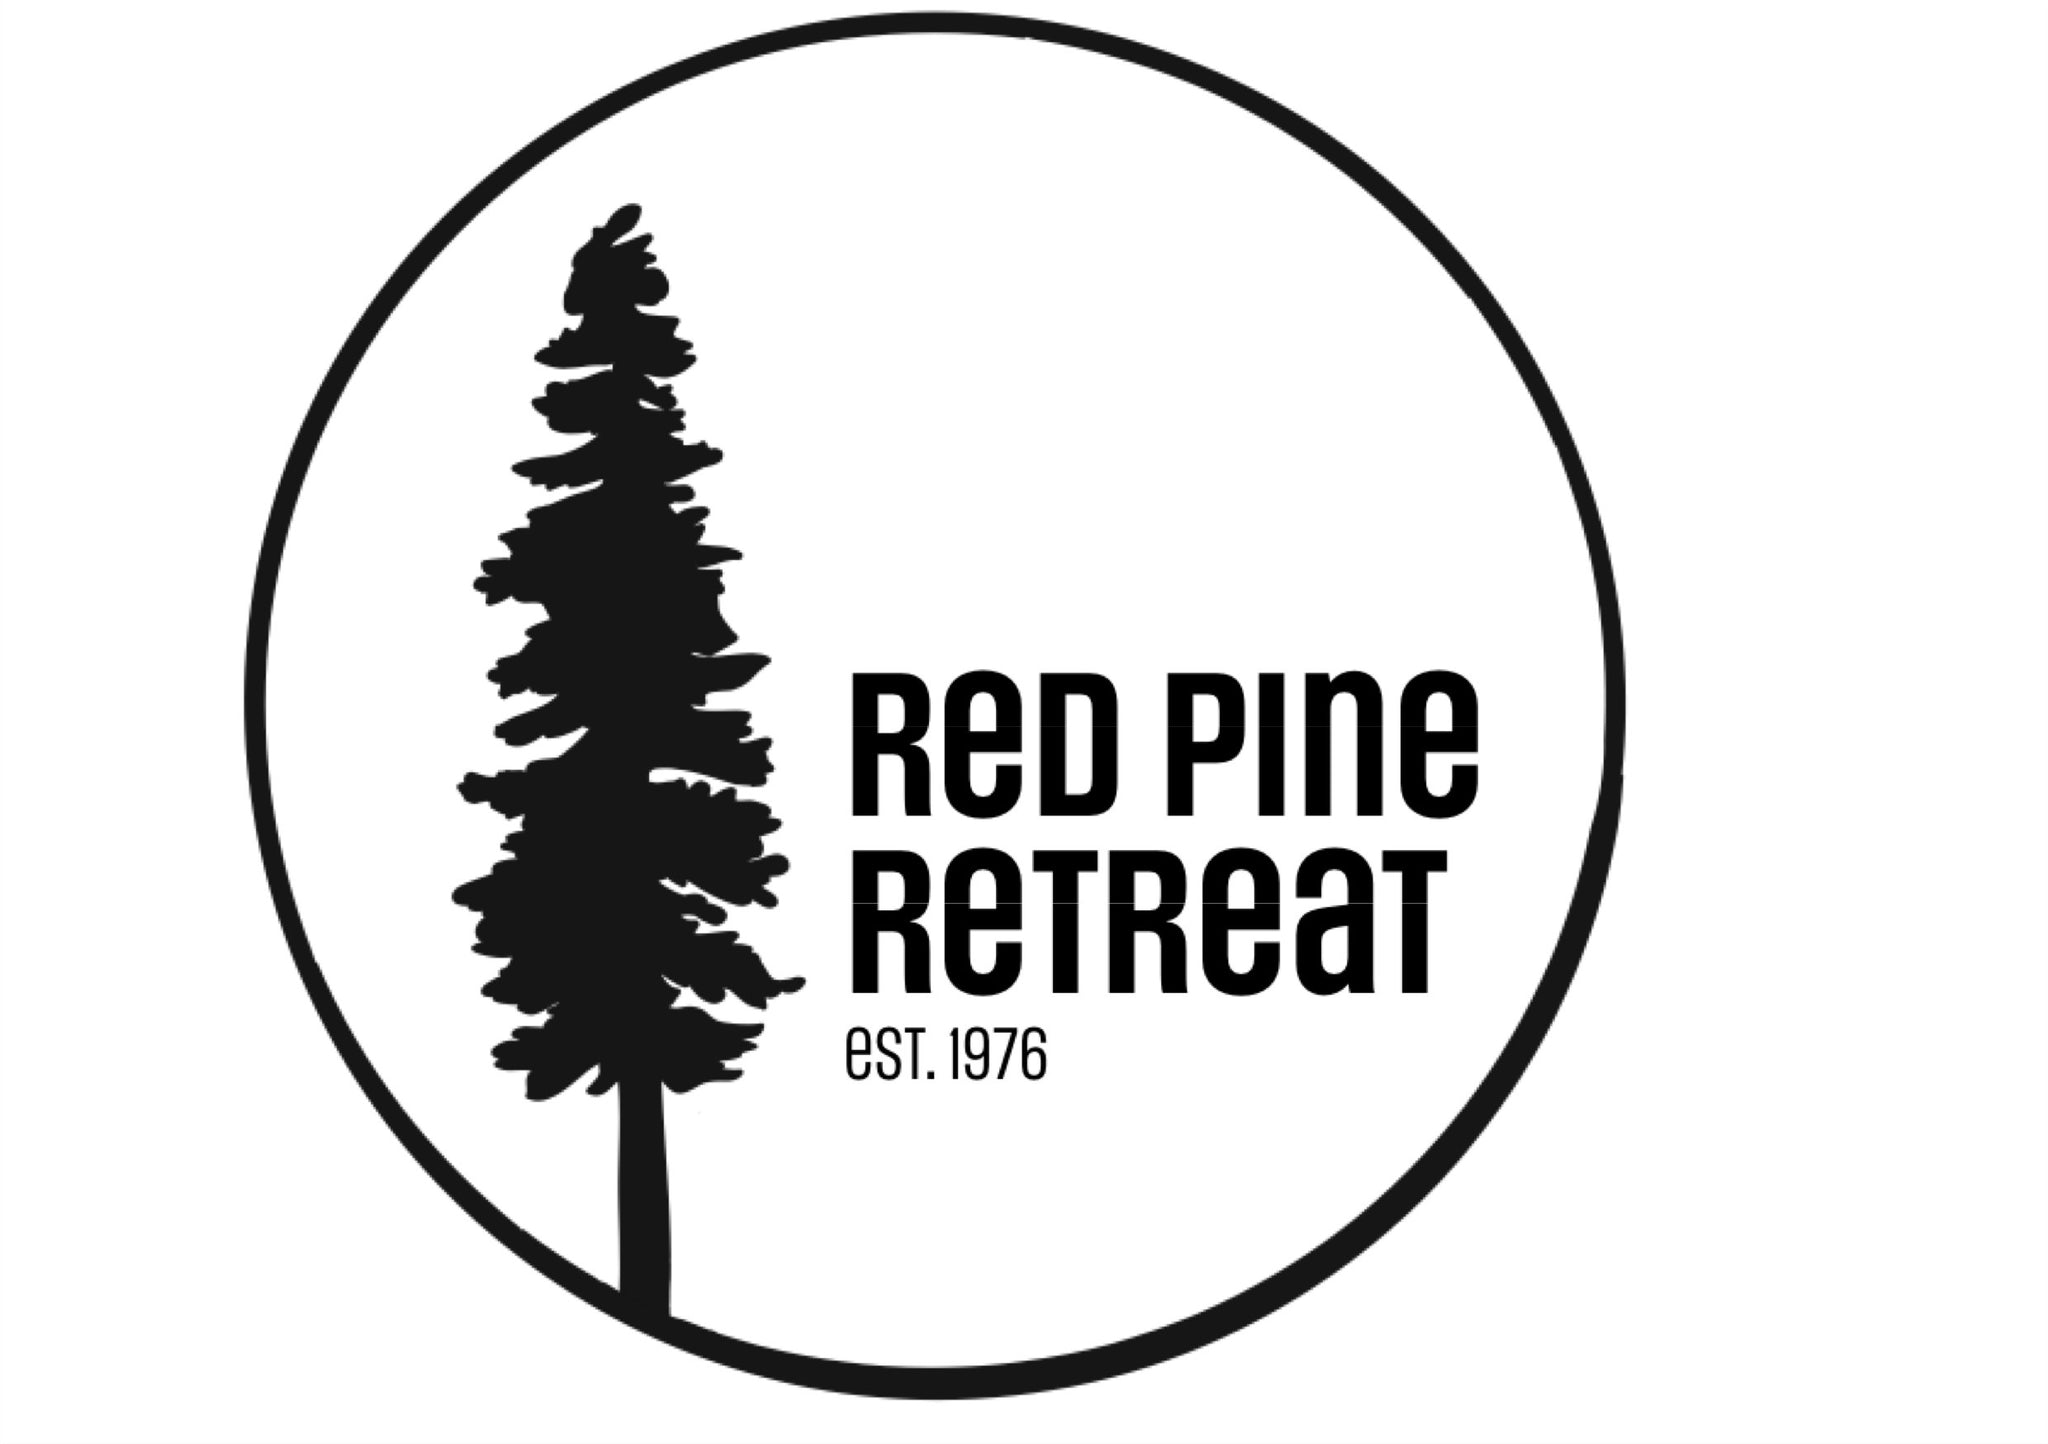 Red Pine Retreat